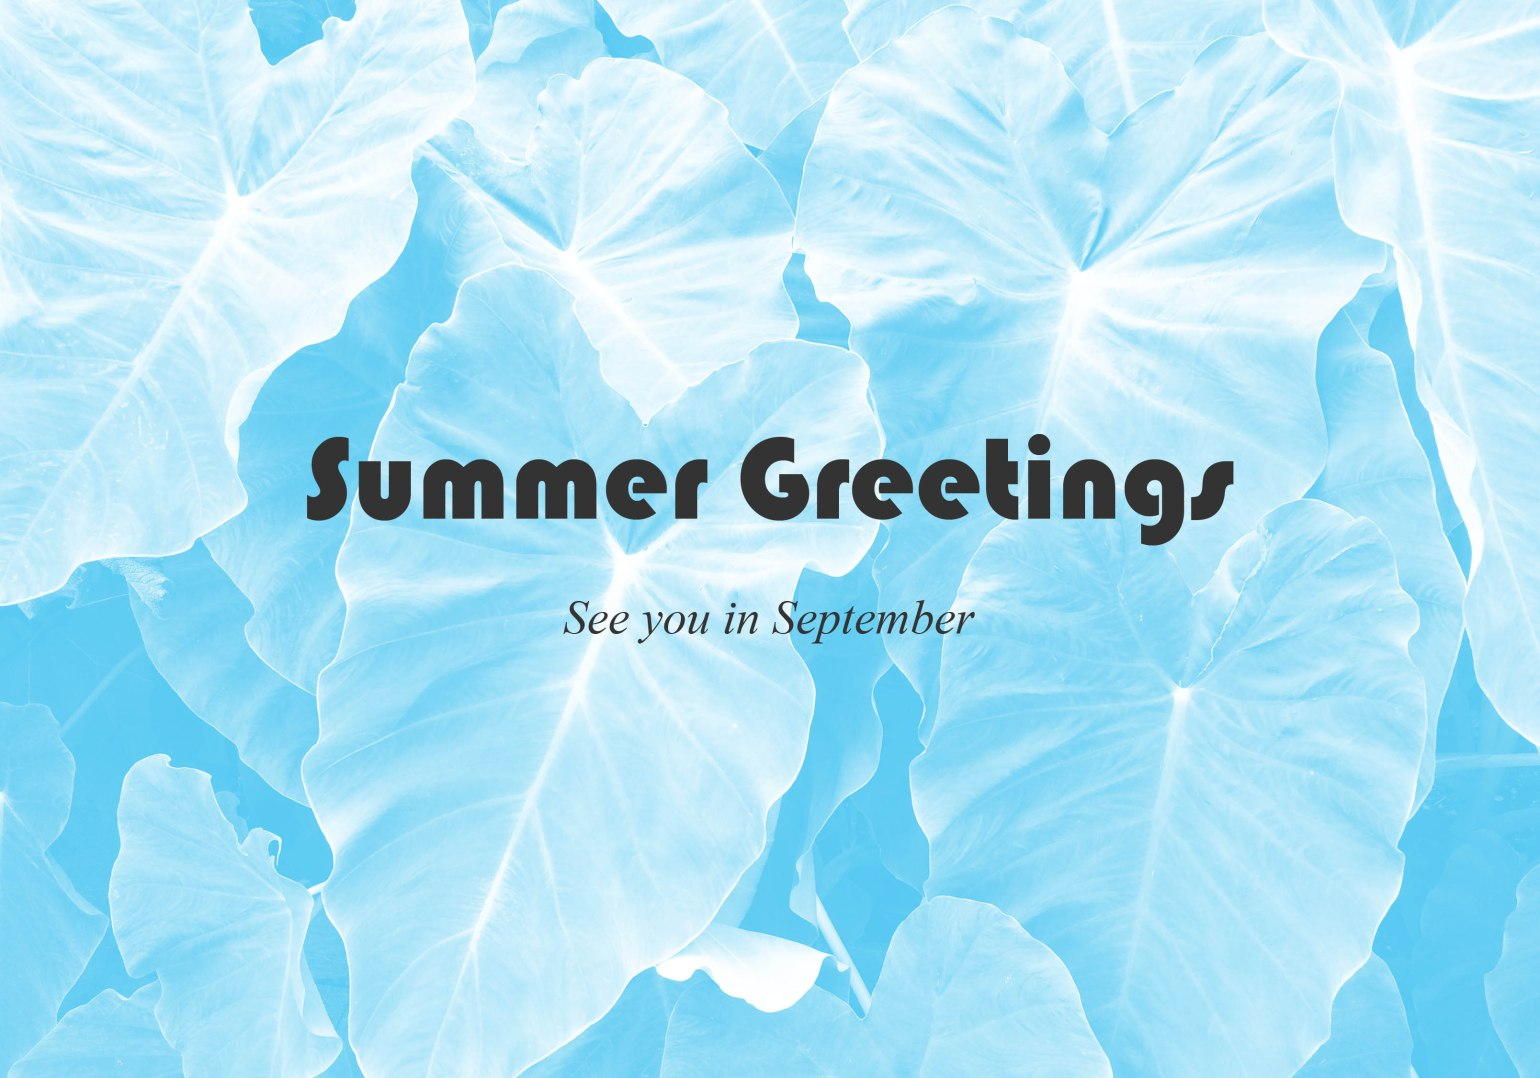 Fisk Frisk Summer Greetings 2015